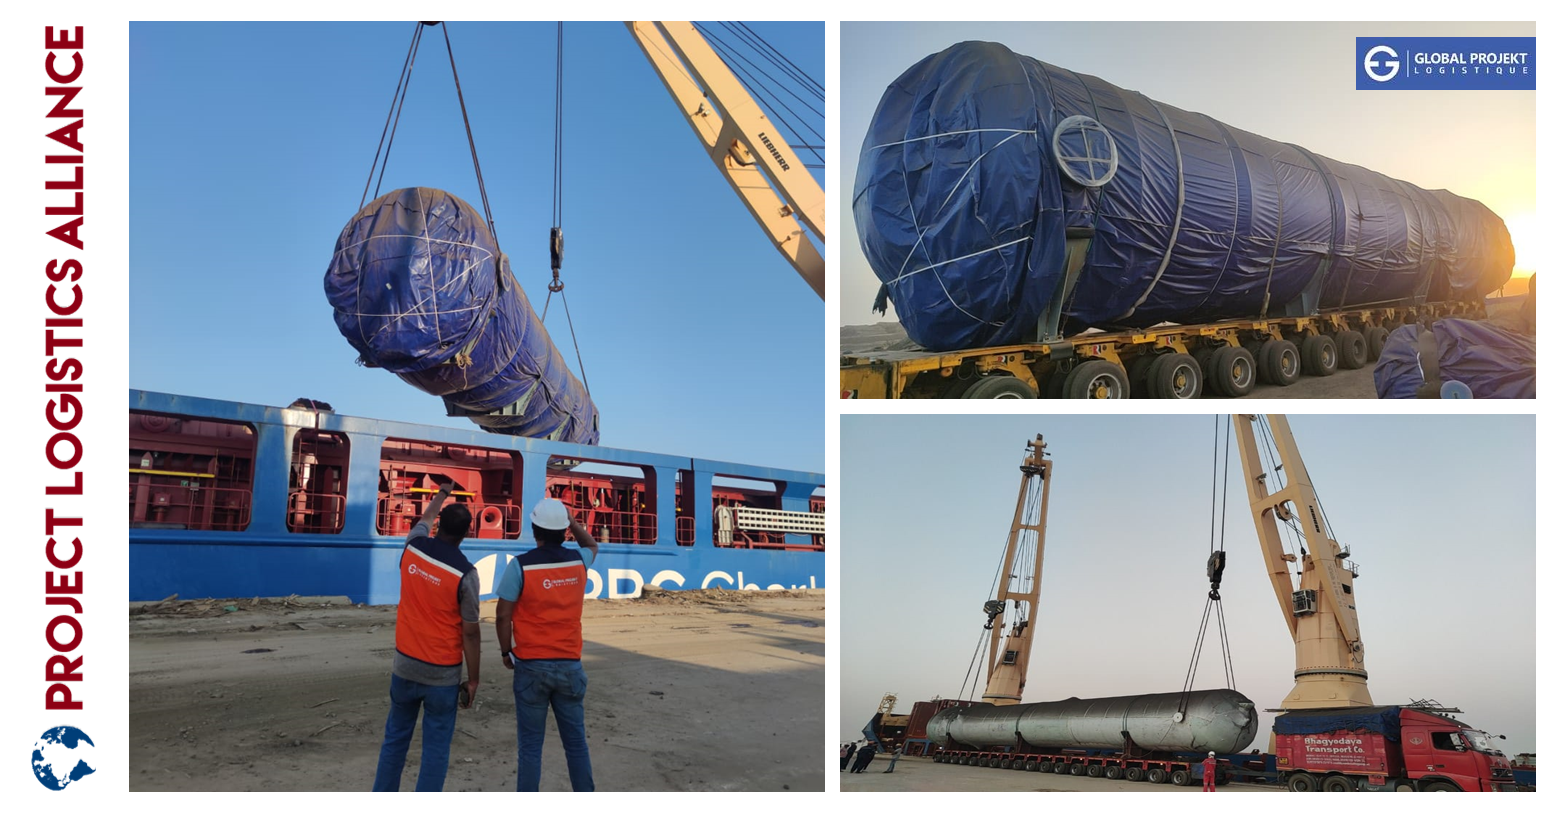 Global Projekt Logistique Concludes The Year With The Transport Of Heavy Equipment For An Ethanol Plant